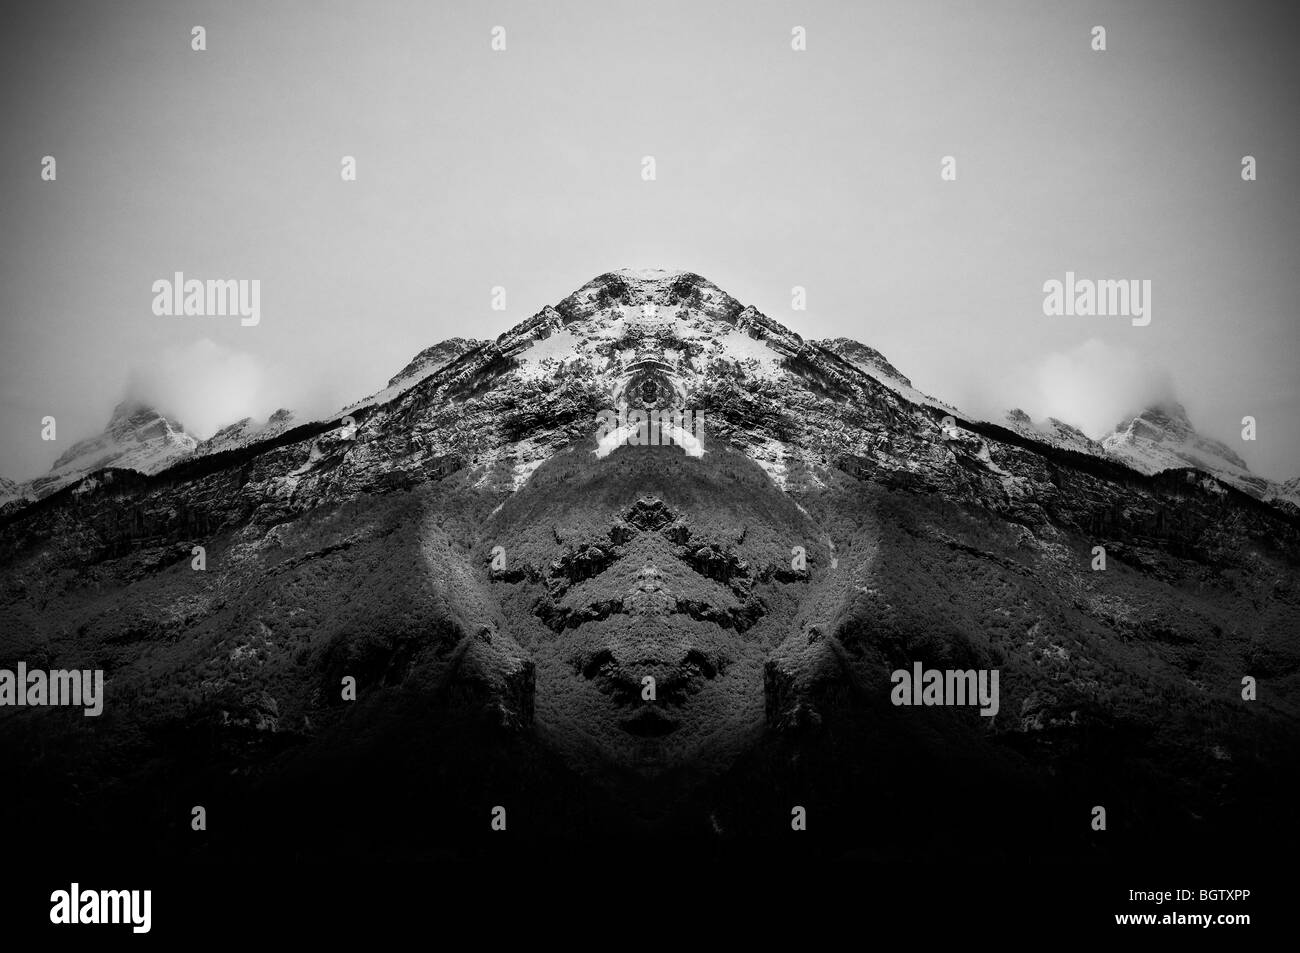 Threatening mountain - Stock Image